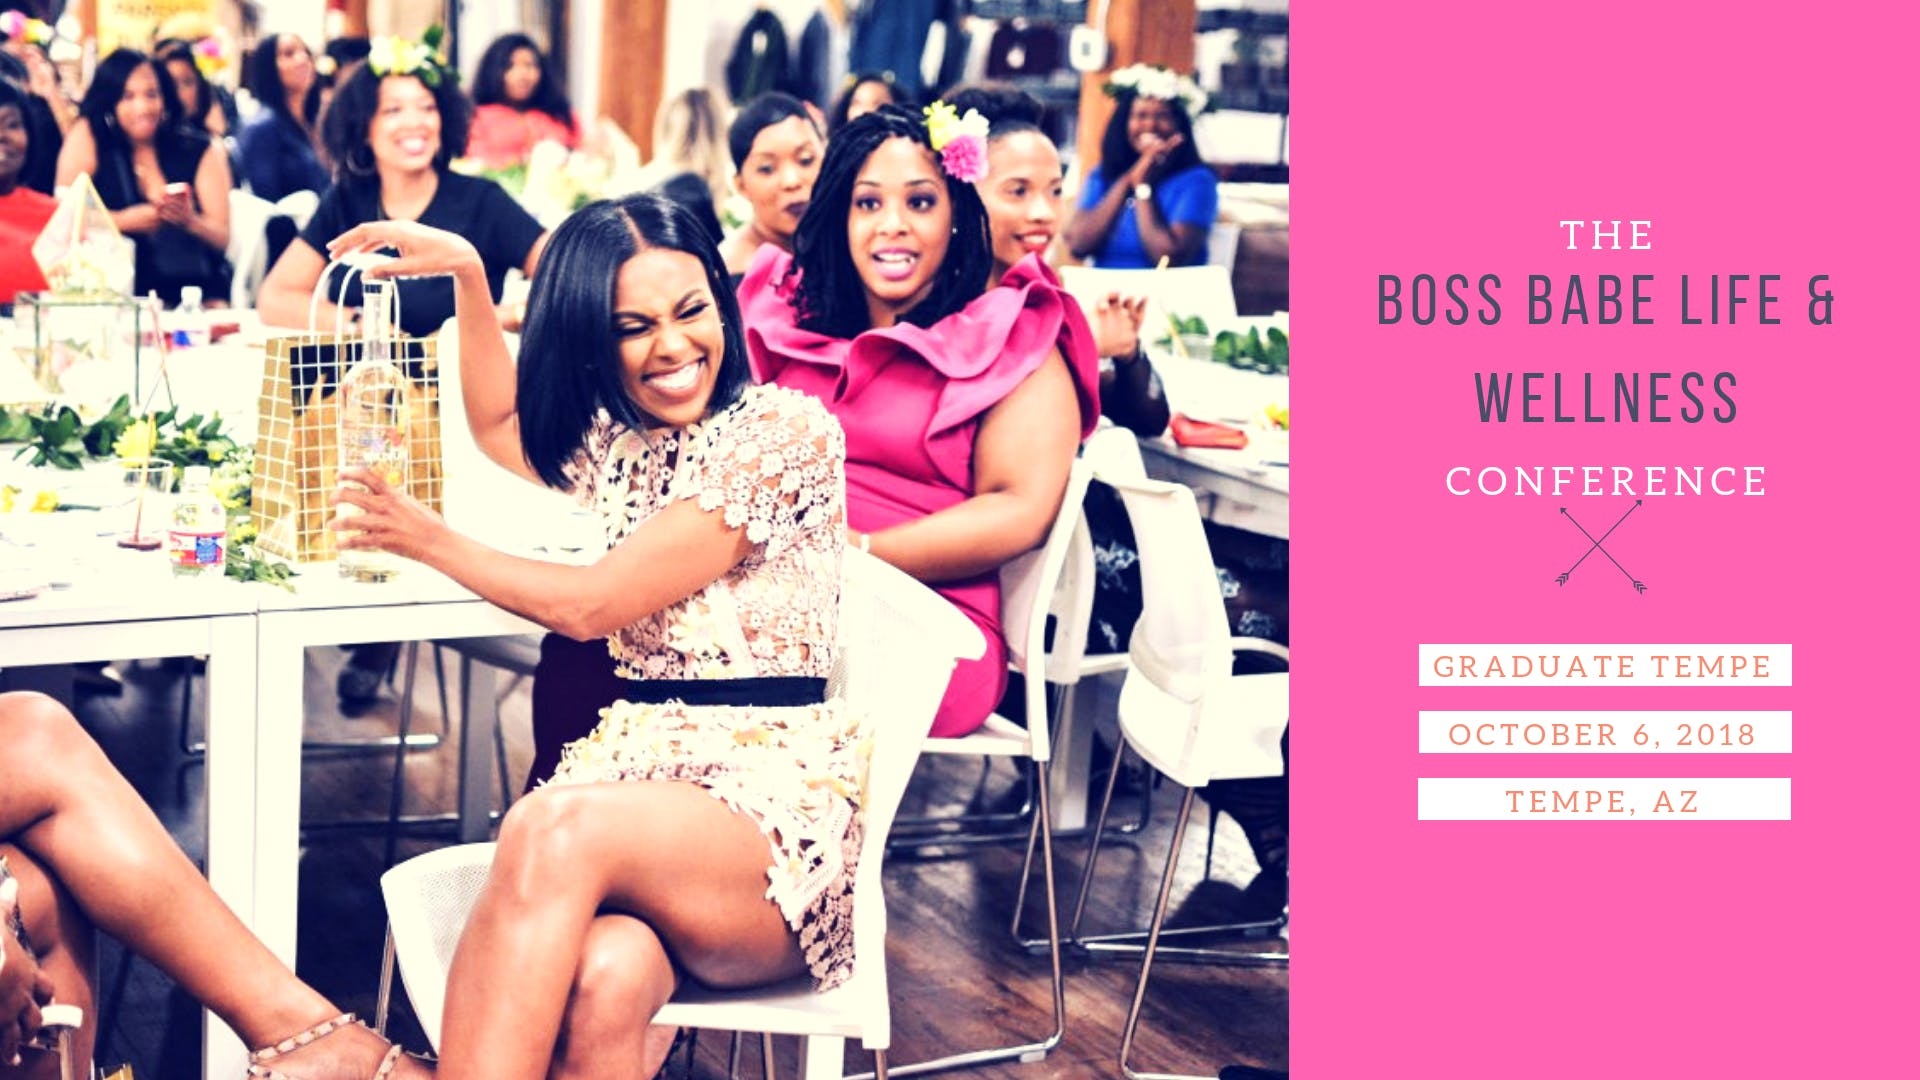 Boss Babe Life and Wellness Conference